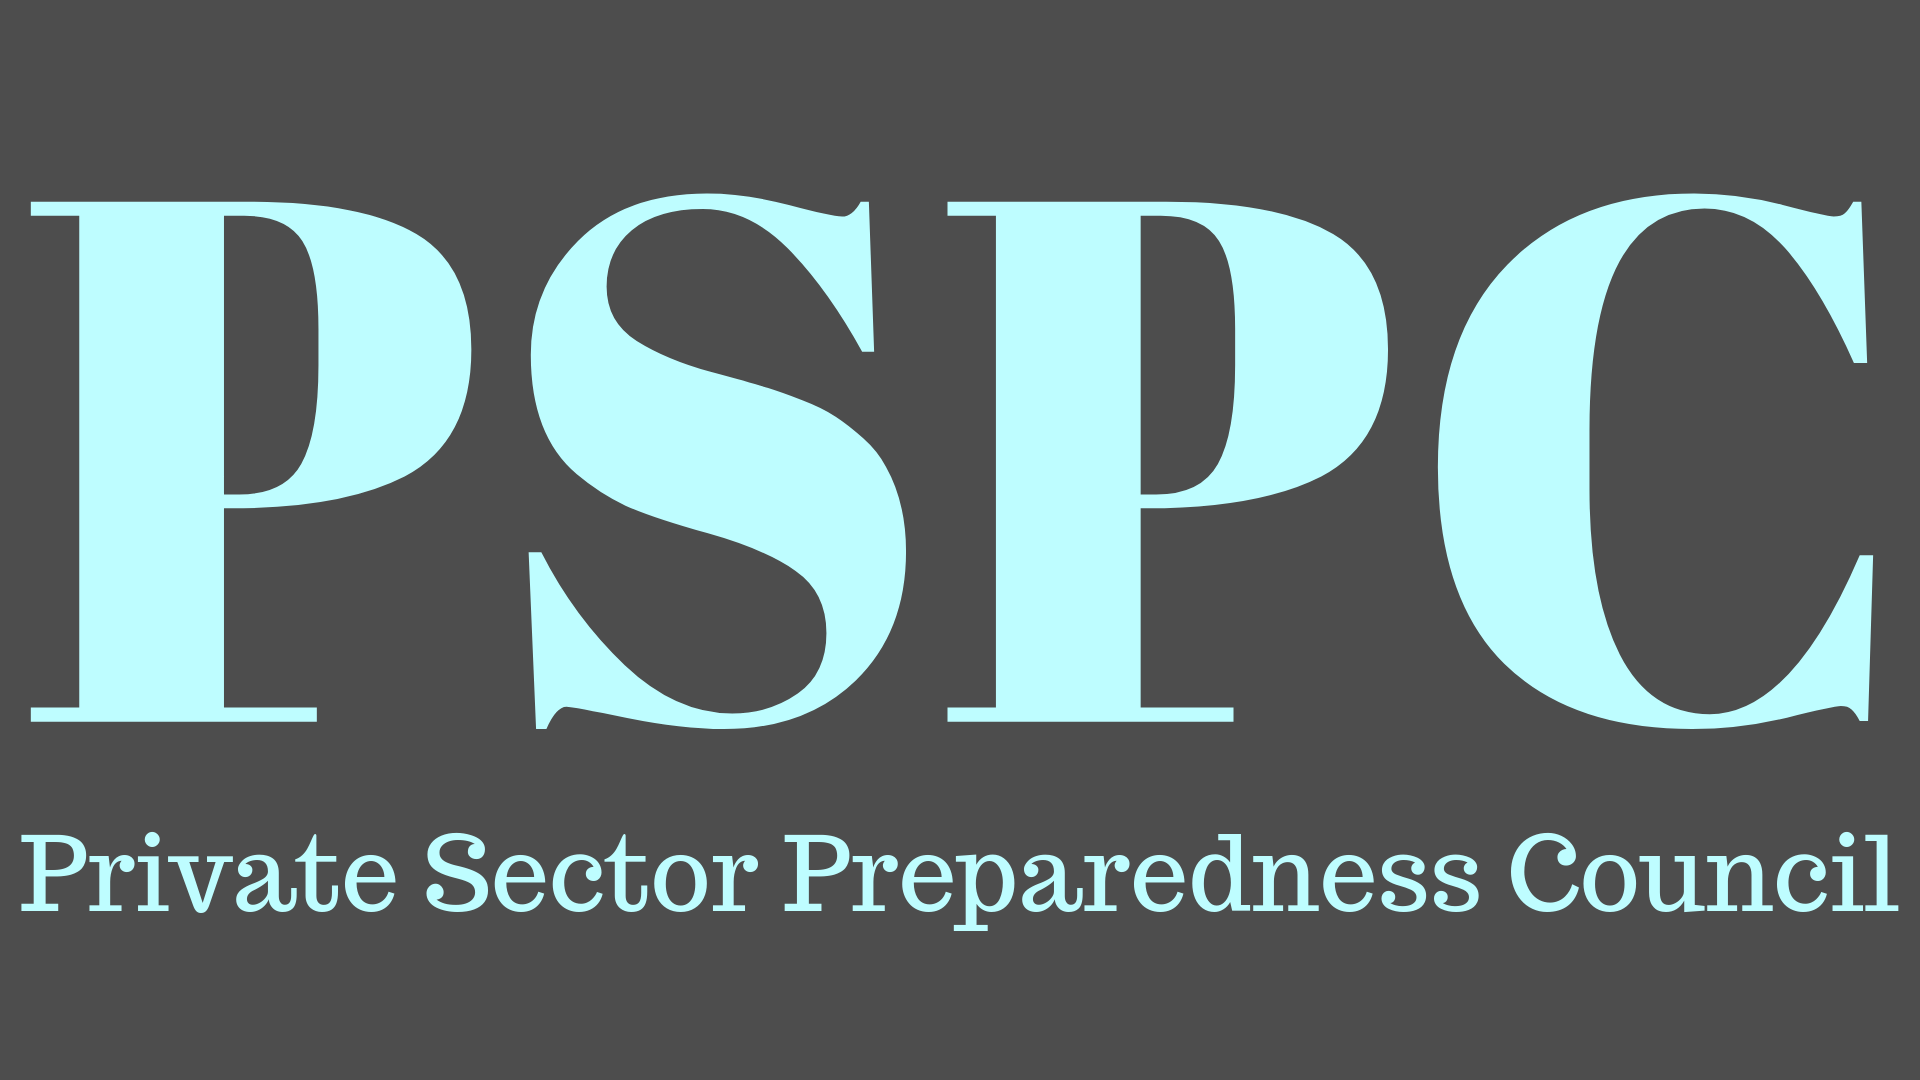 Image saying Private Sector Preparedness Council